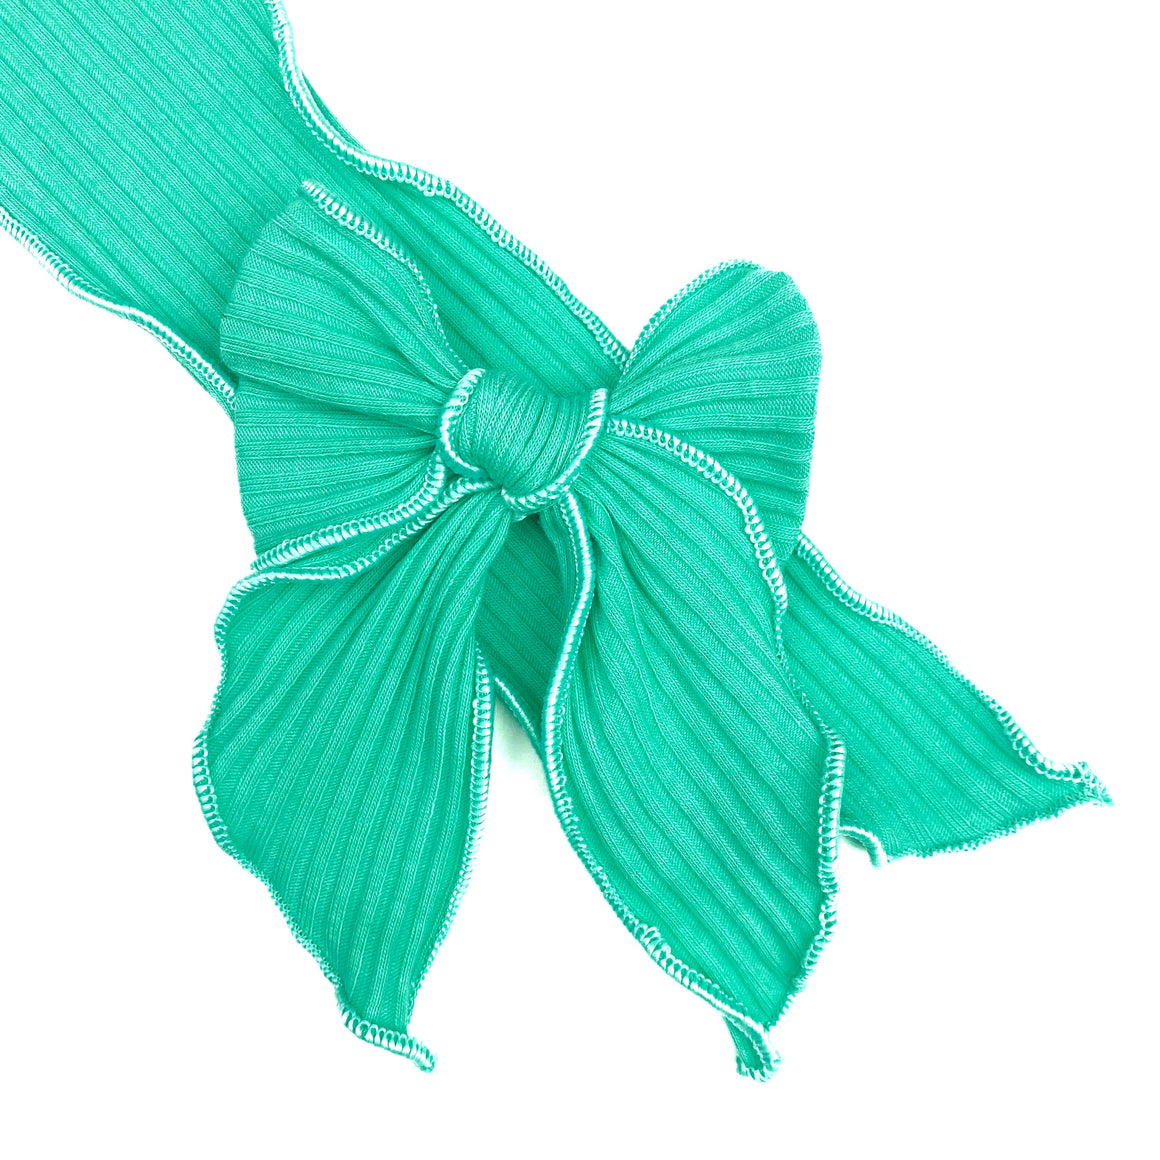 Green Turquoise Rib Knit JB Effortless Bow Strips - Serged Edge